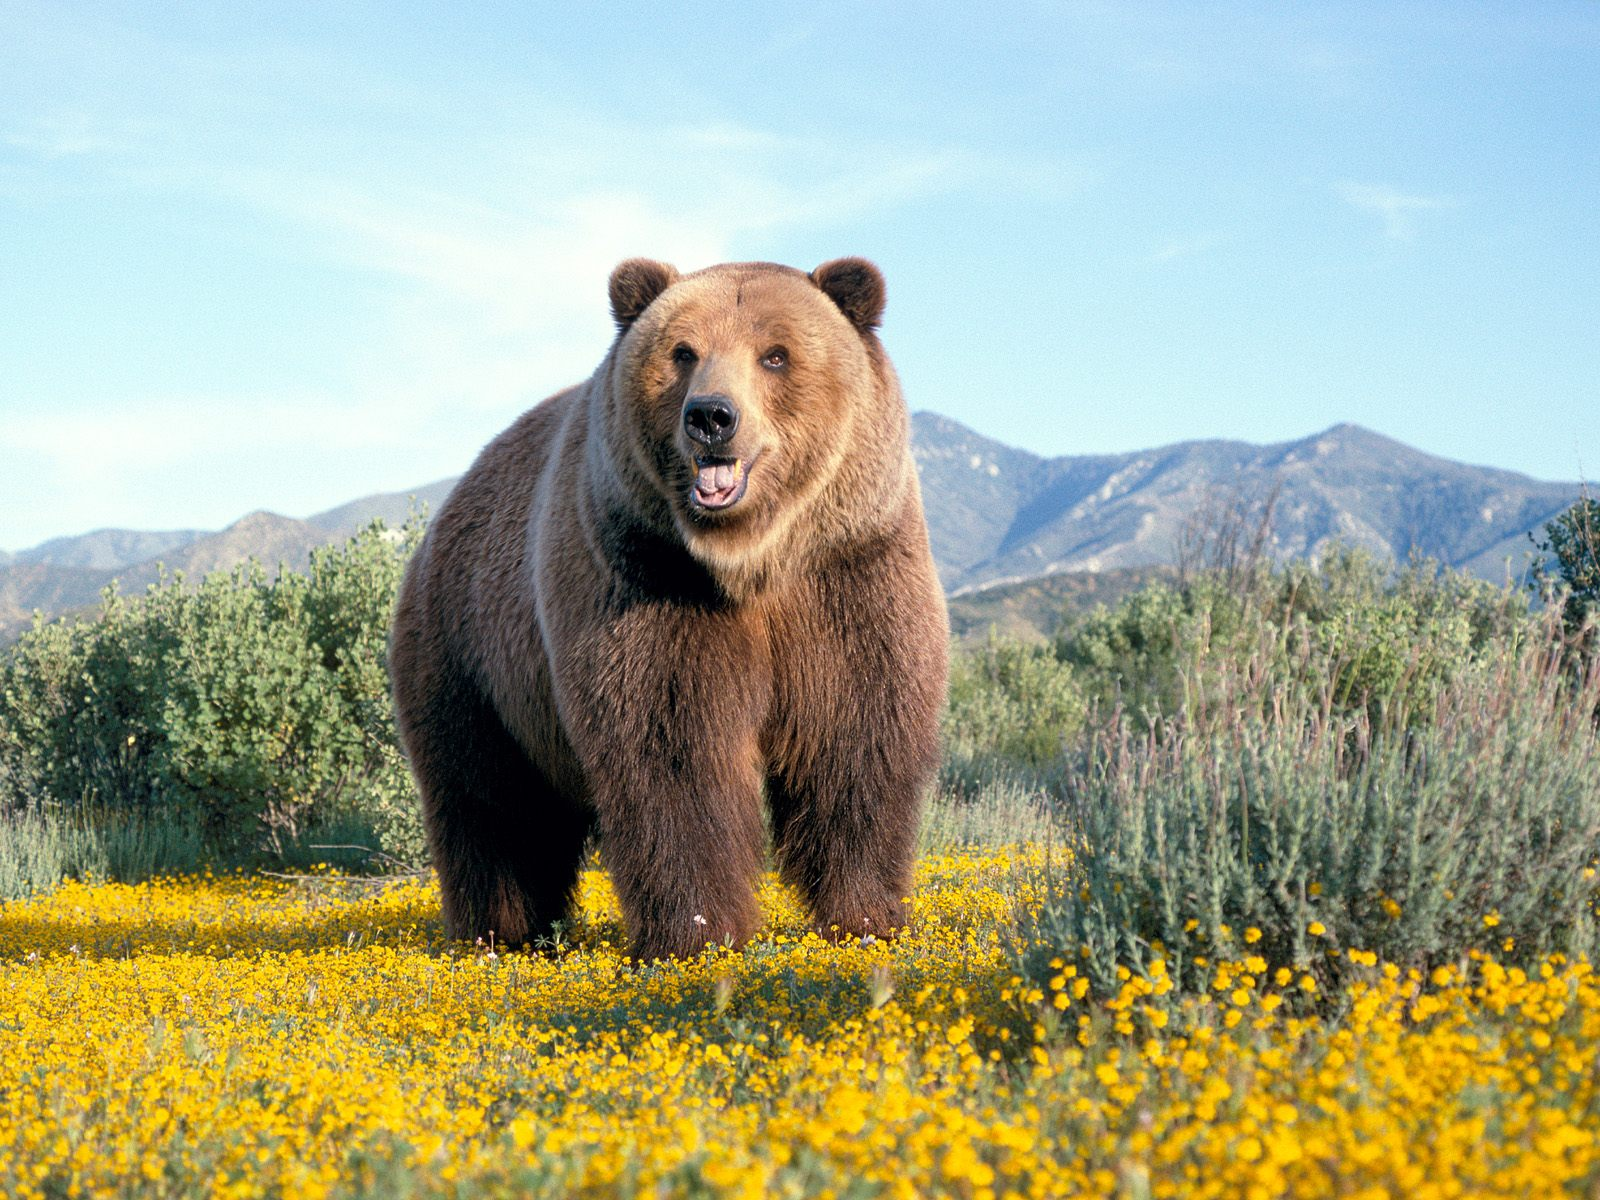 Funny fat bear widescreen wallpaper |Funny Animal